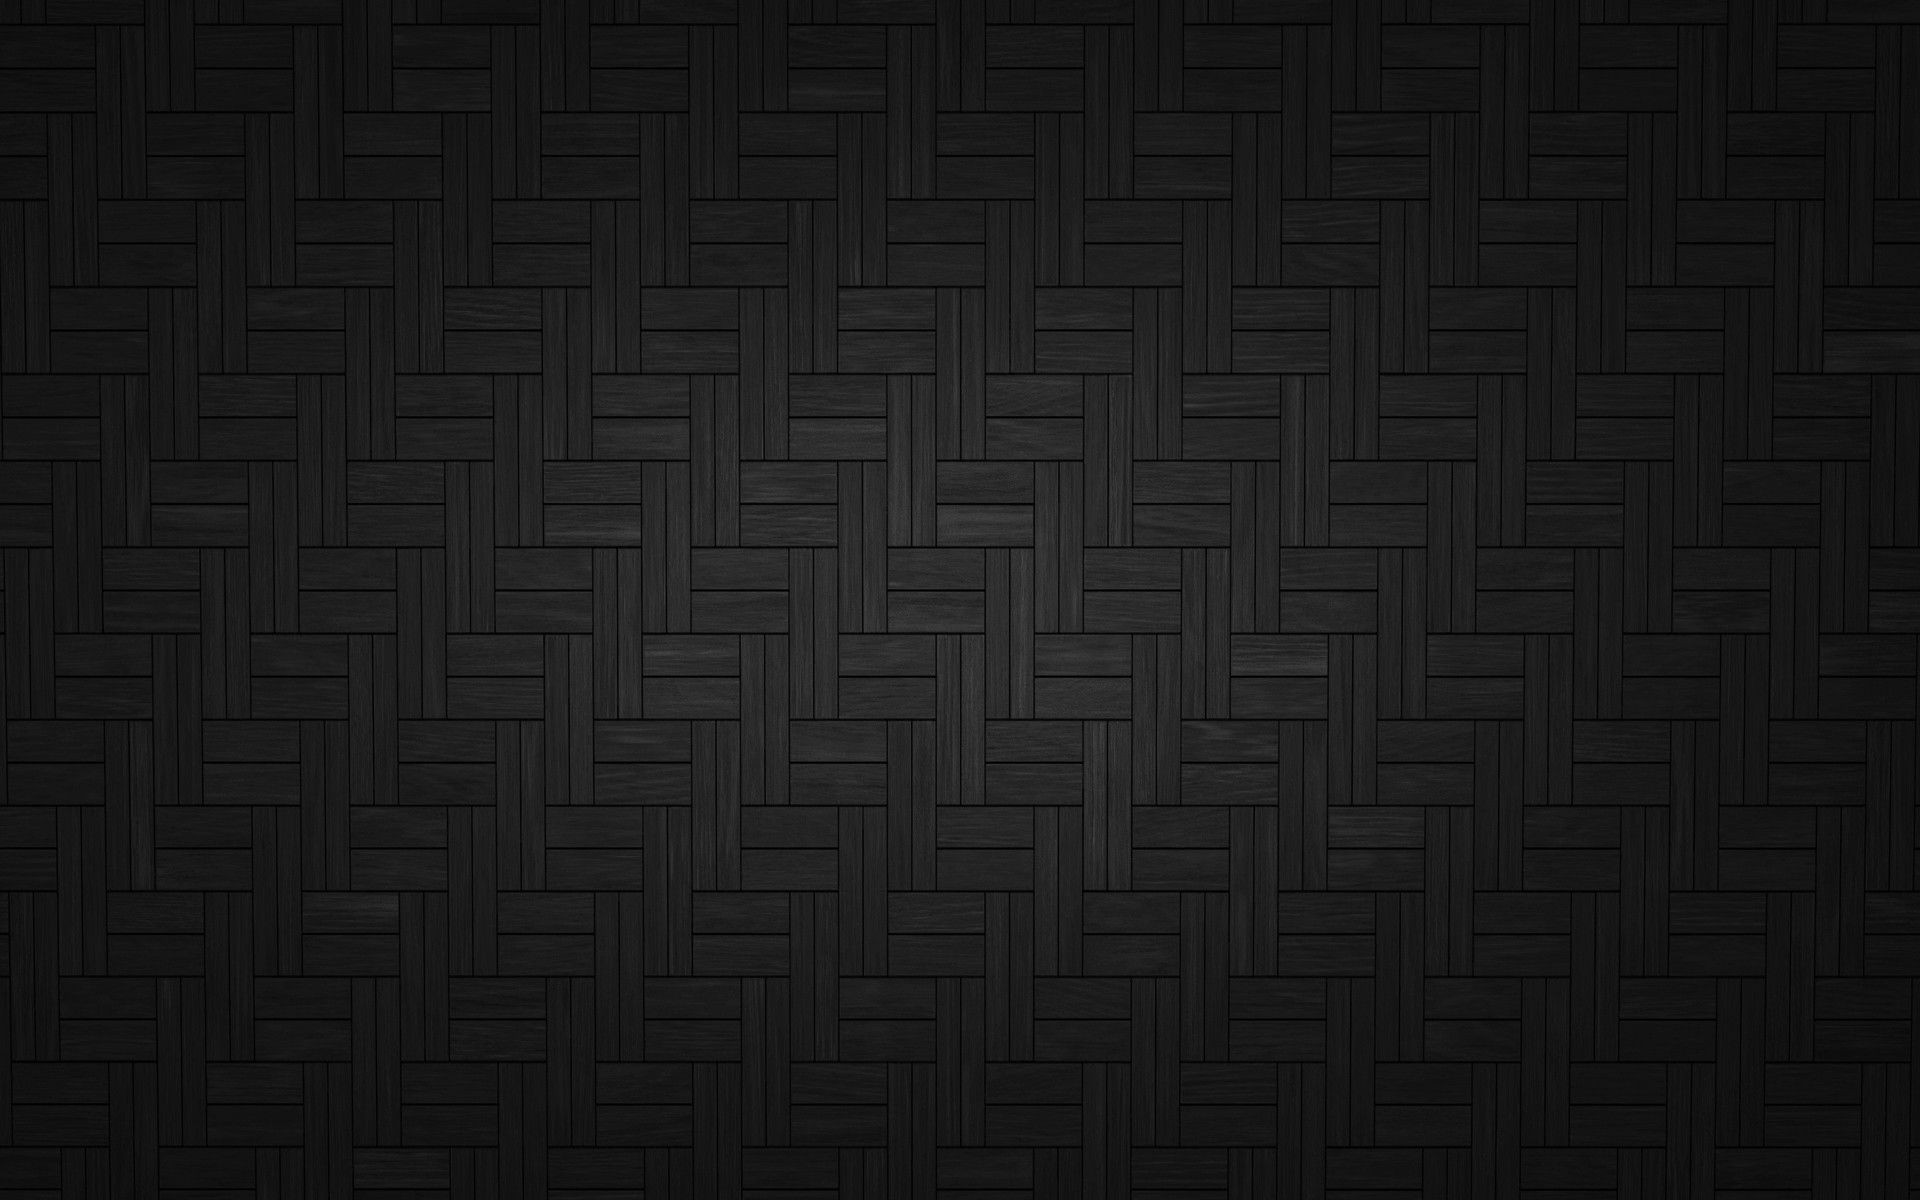 Android Background Hd Black Posted By Sarah Anderson